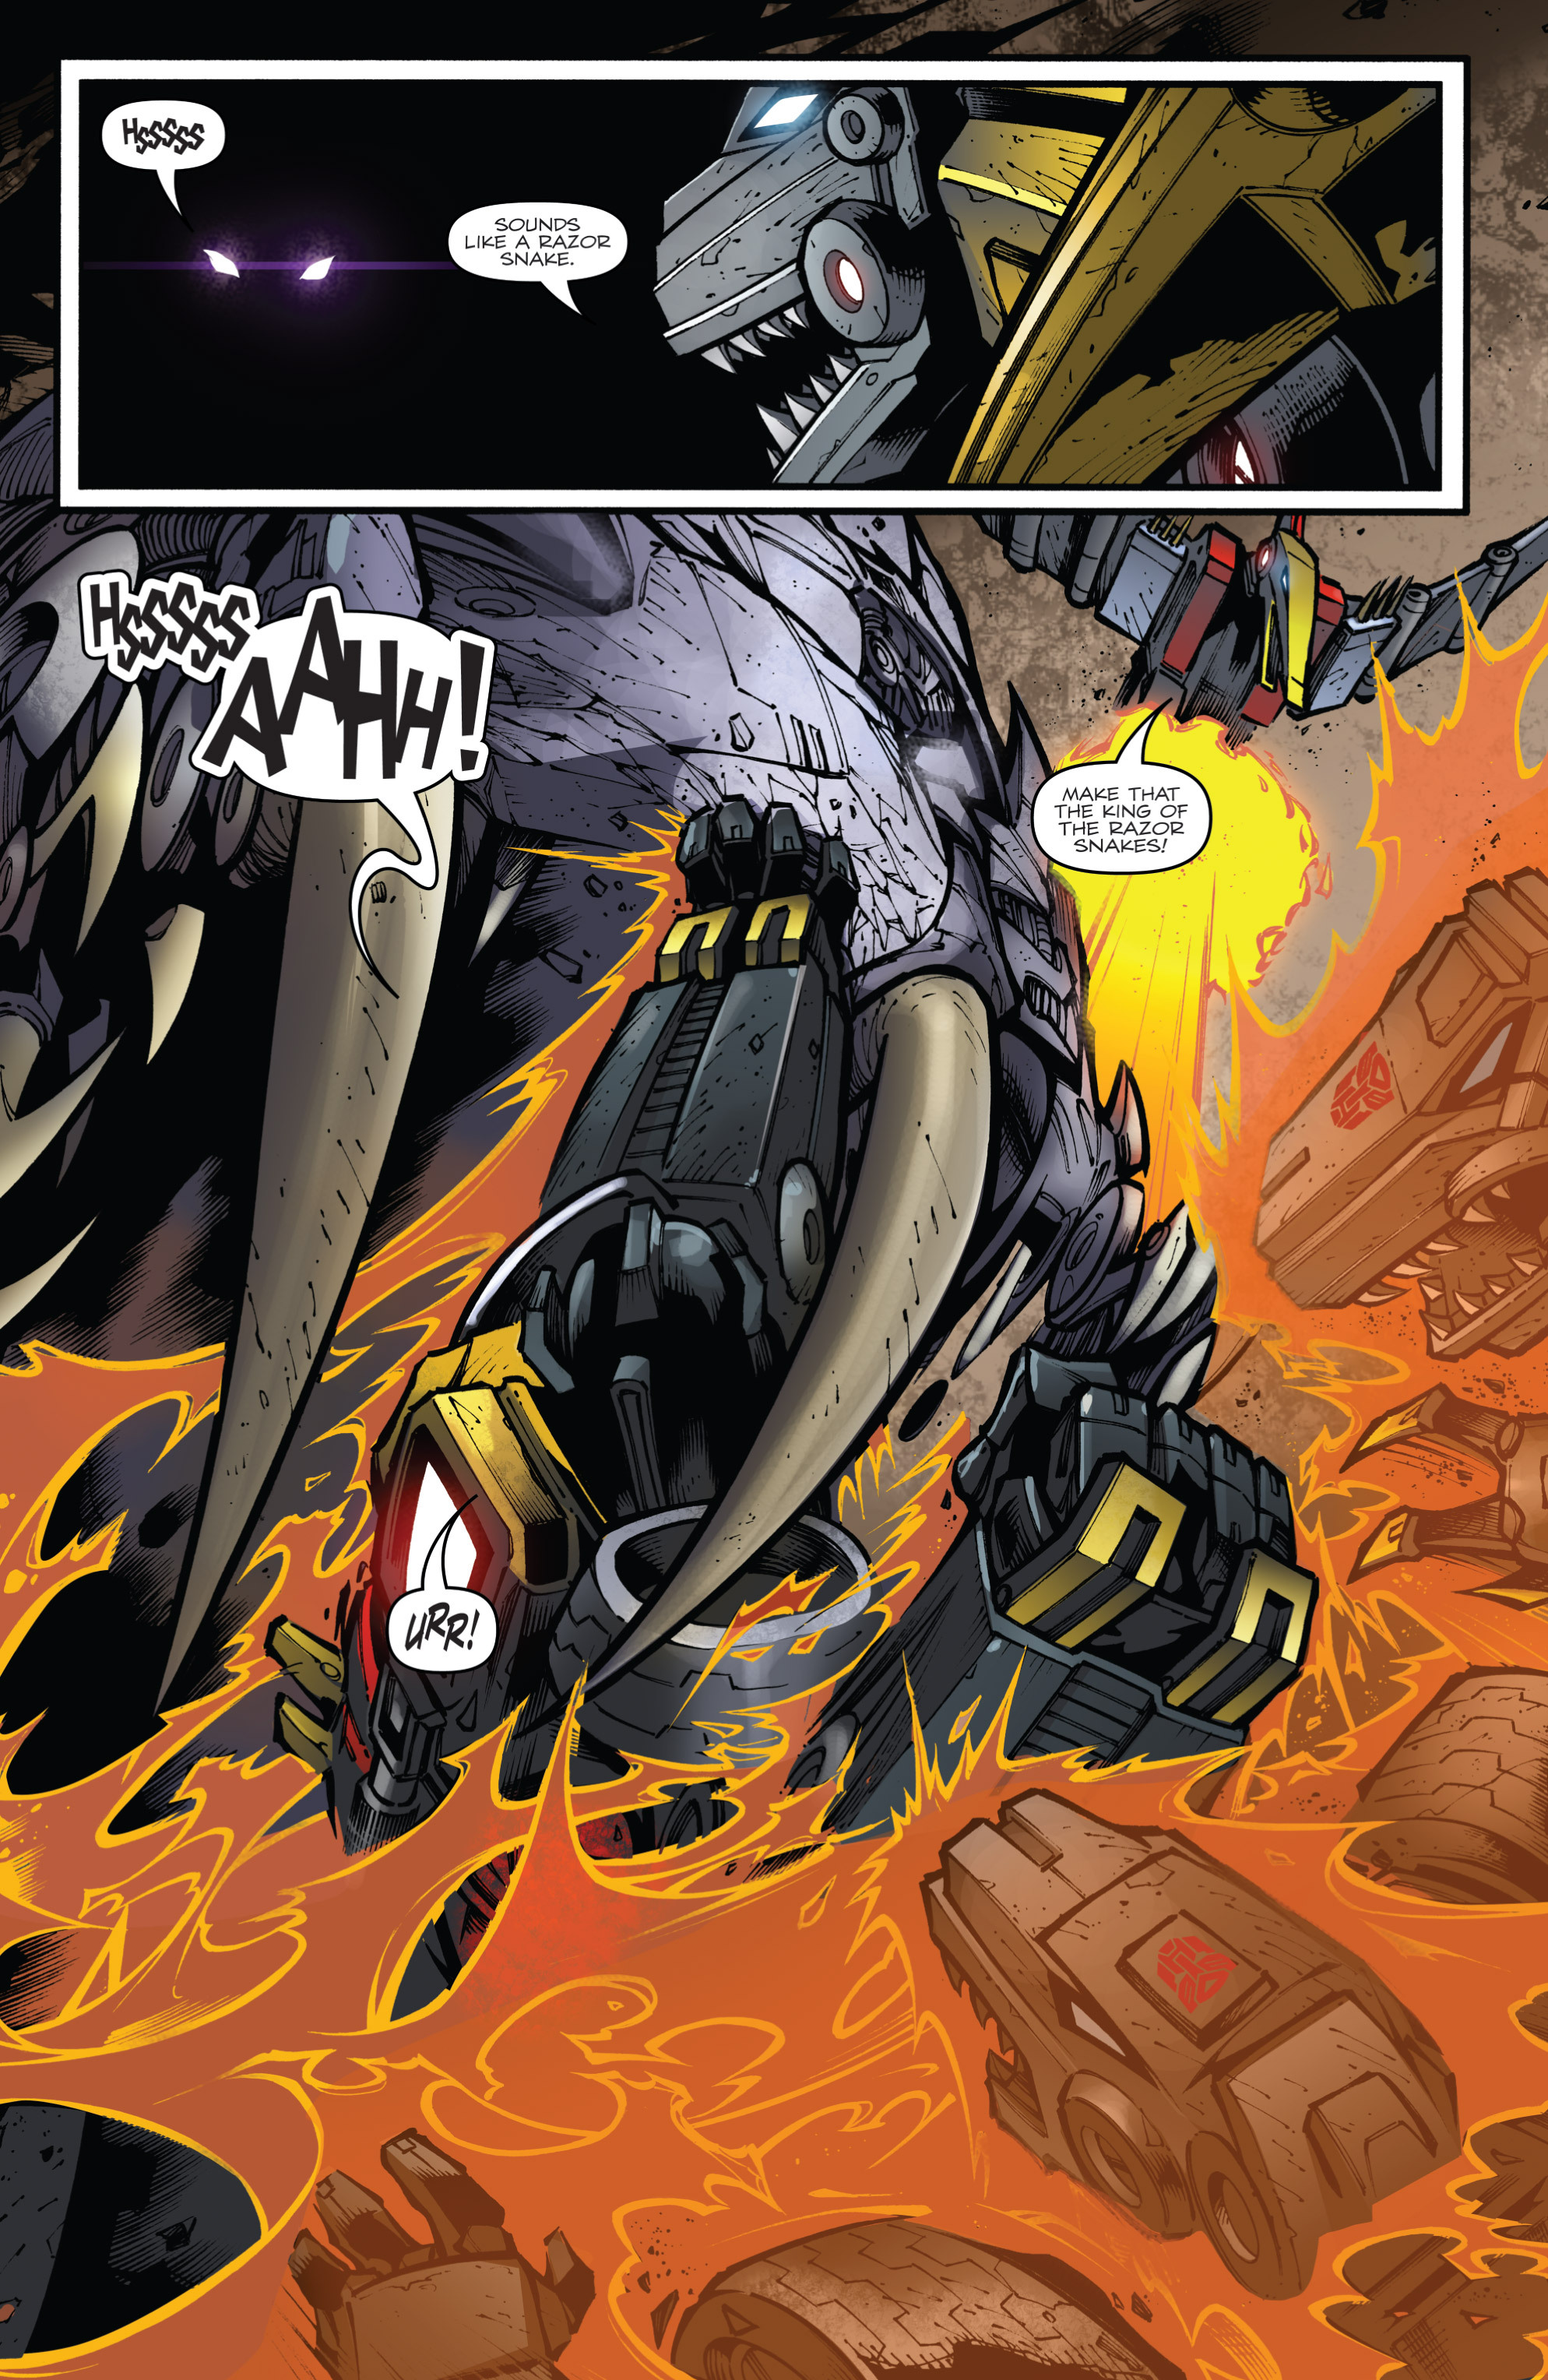 Read online Transformers Prime: Beast Hunters comic -  Issue #6 - 17